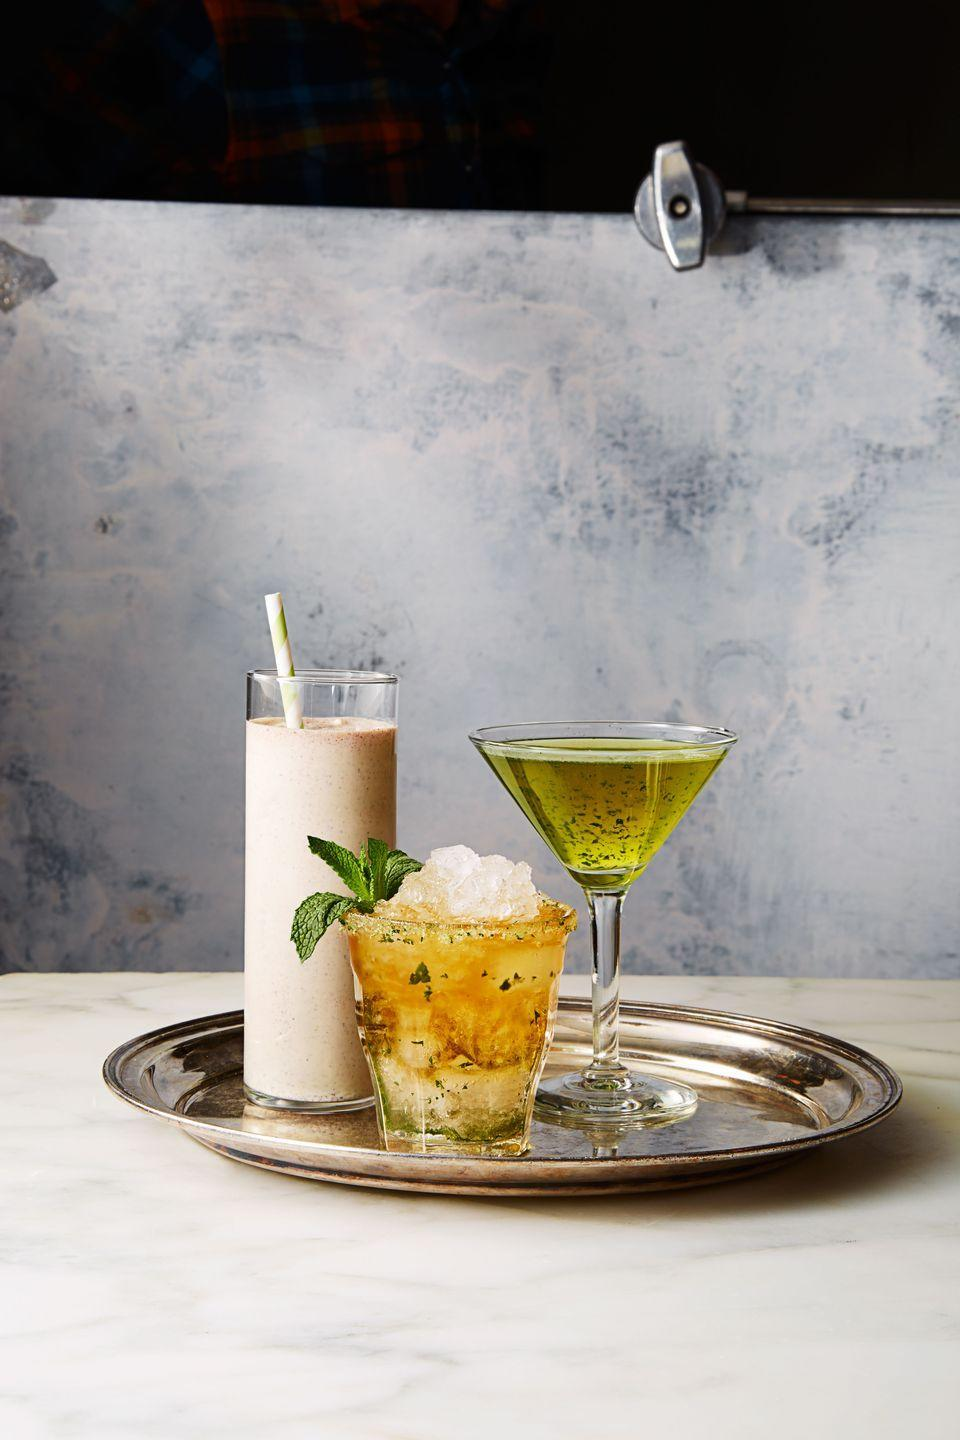 """<p>The term julep originates from a Persian word """"gulab,"""" which was adapted into English as another term for medicine. It eventually came to slyly refer to a drink as a morning pick-me-up. In 1938, this mint- and bourbon-based julep was named the official cocktail of the Kentucky Derby, where it's now consumed throughout the day.</p><p><em><a href=""""https://www.goodhousekeeping.com/food-recipes/a38385/mint-julep-recipe/"""" rel=""""nofollow noopener"""" target=""""_blank"""" data-ylk=""""slk:Get the recipe for Mint Julep"""" class=""""link rapid-noclick-resp"""">Get the recipe for Mint Julep </a></em> </p>"""